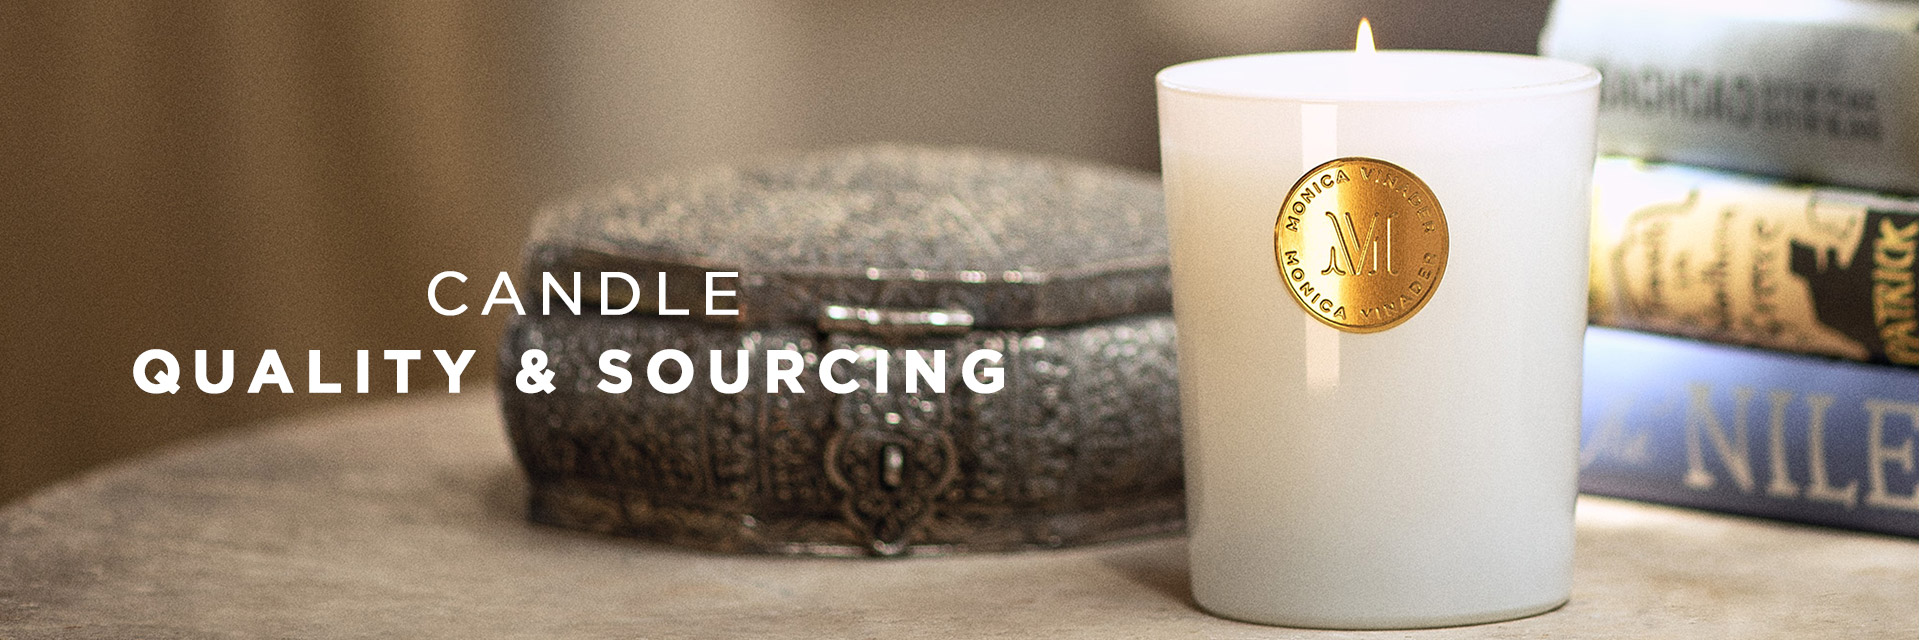 Our candles. Quality & Sourcing.